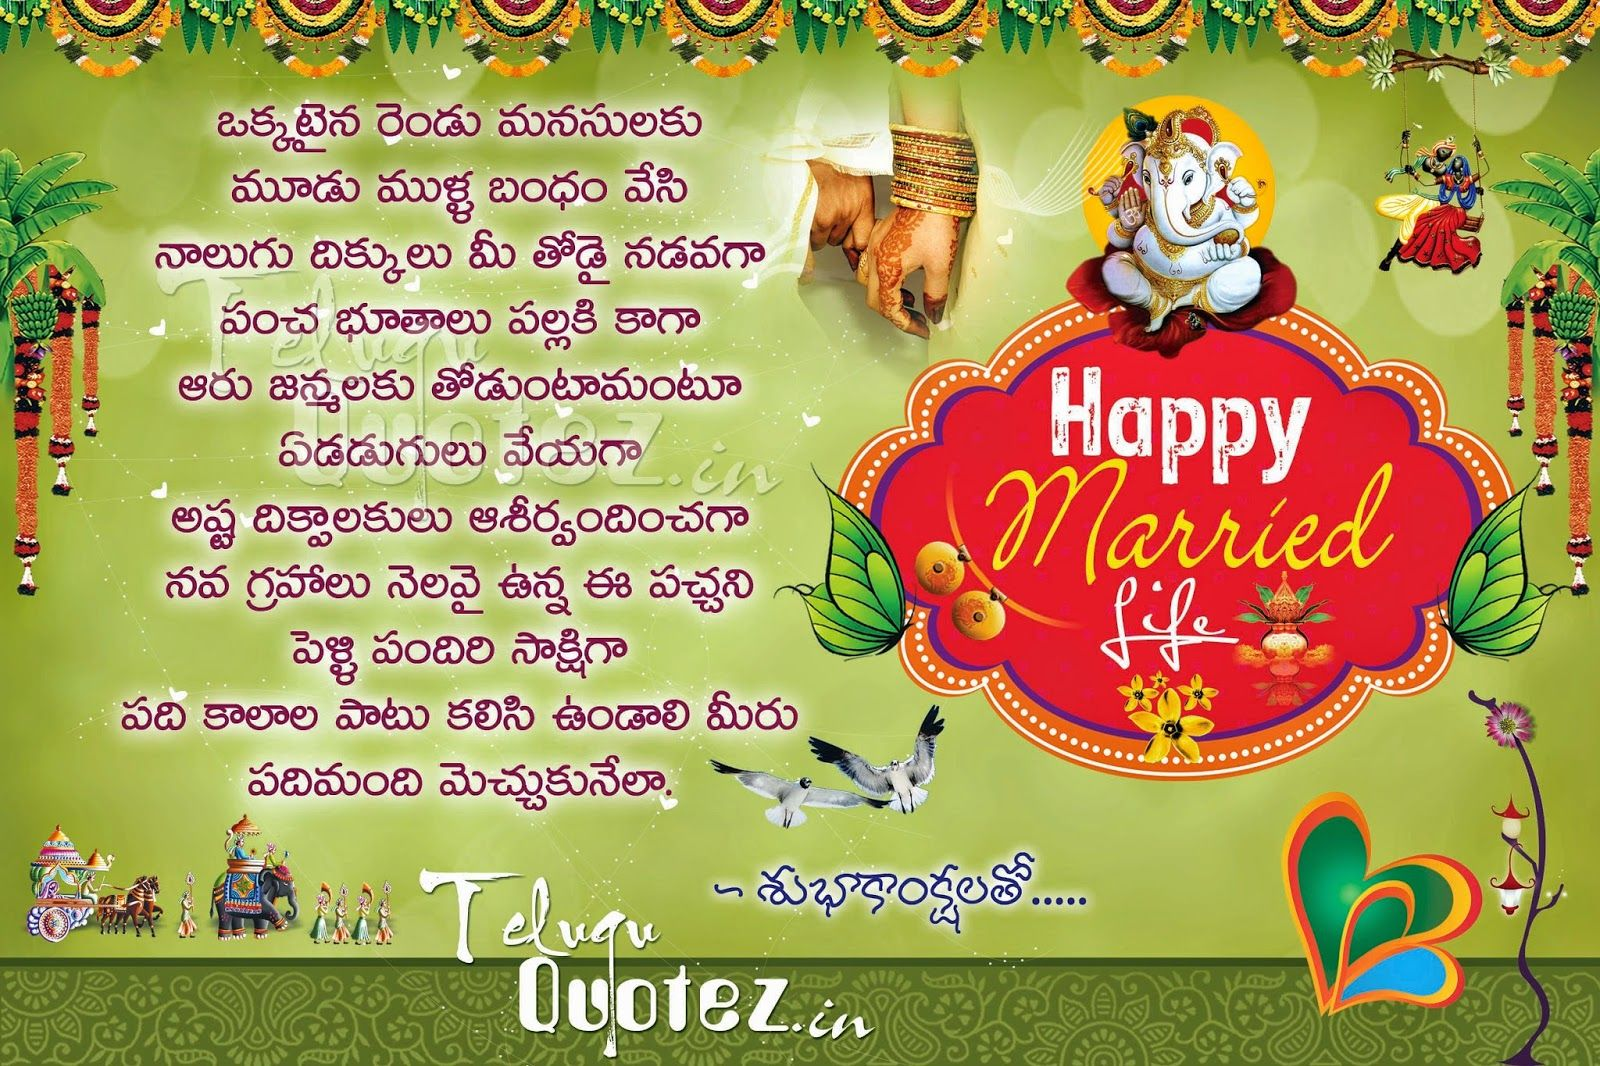 Teluguquotezin Wedding Wishes Sairam Wedding Wedding Wishes